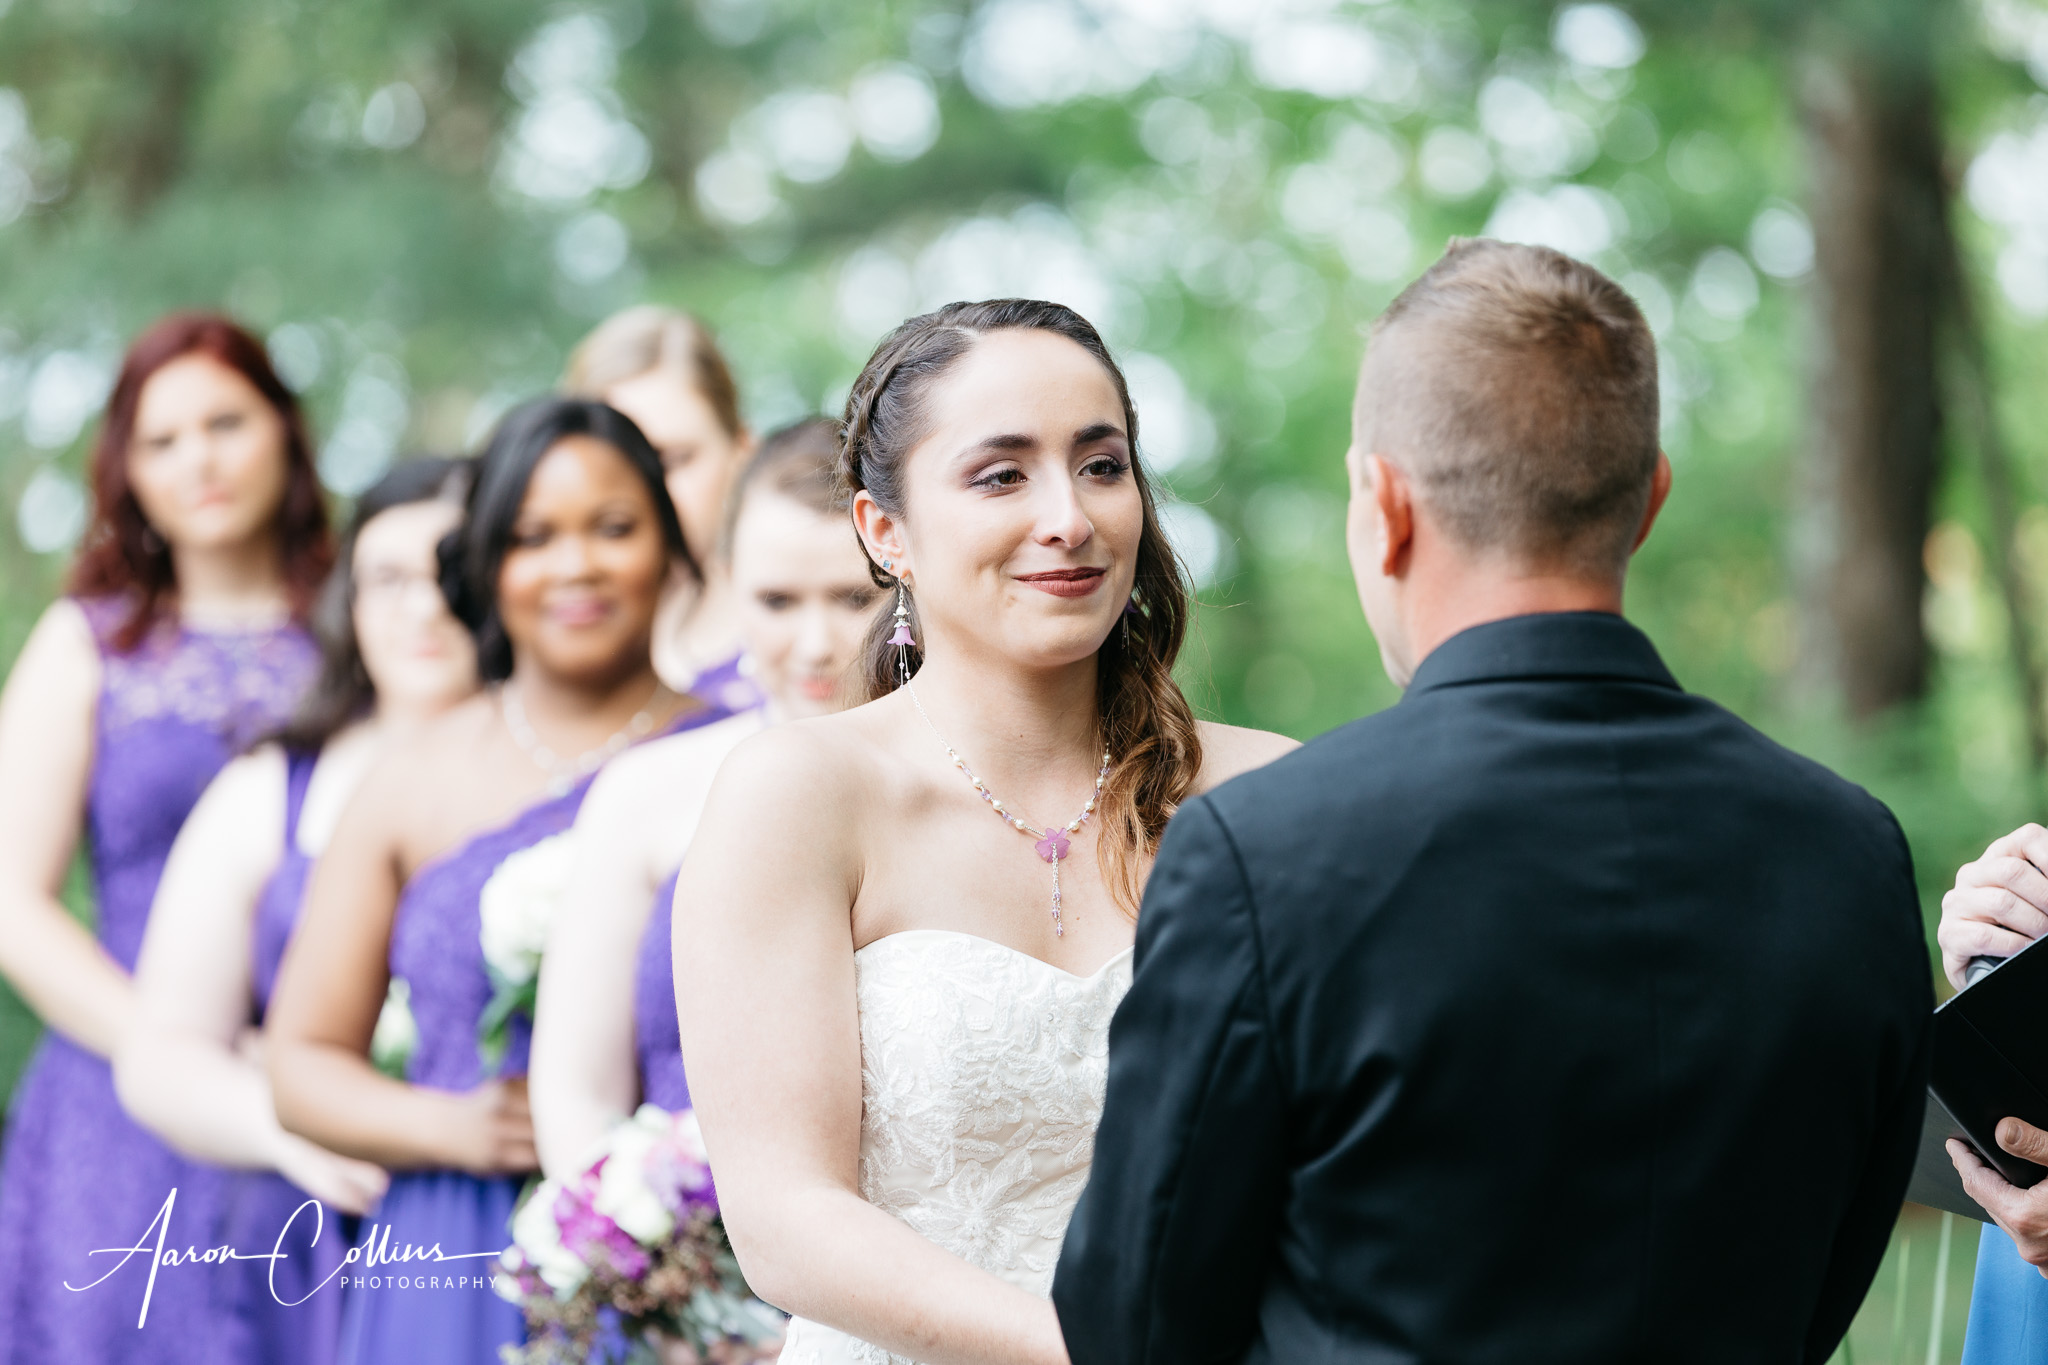 A bride with her bridesmaids looking on as she hears her vows from her soon to be husband.